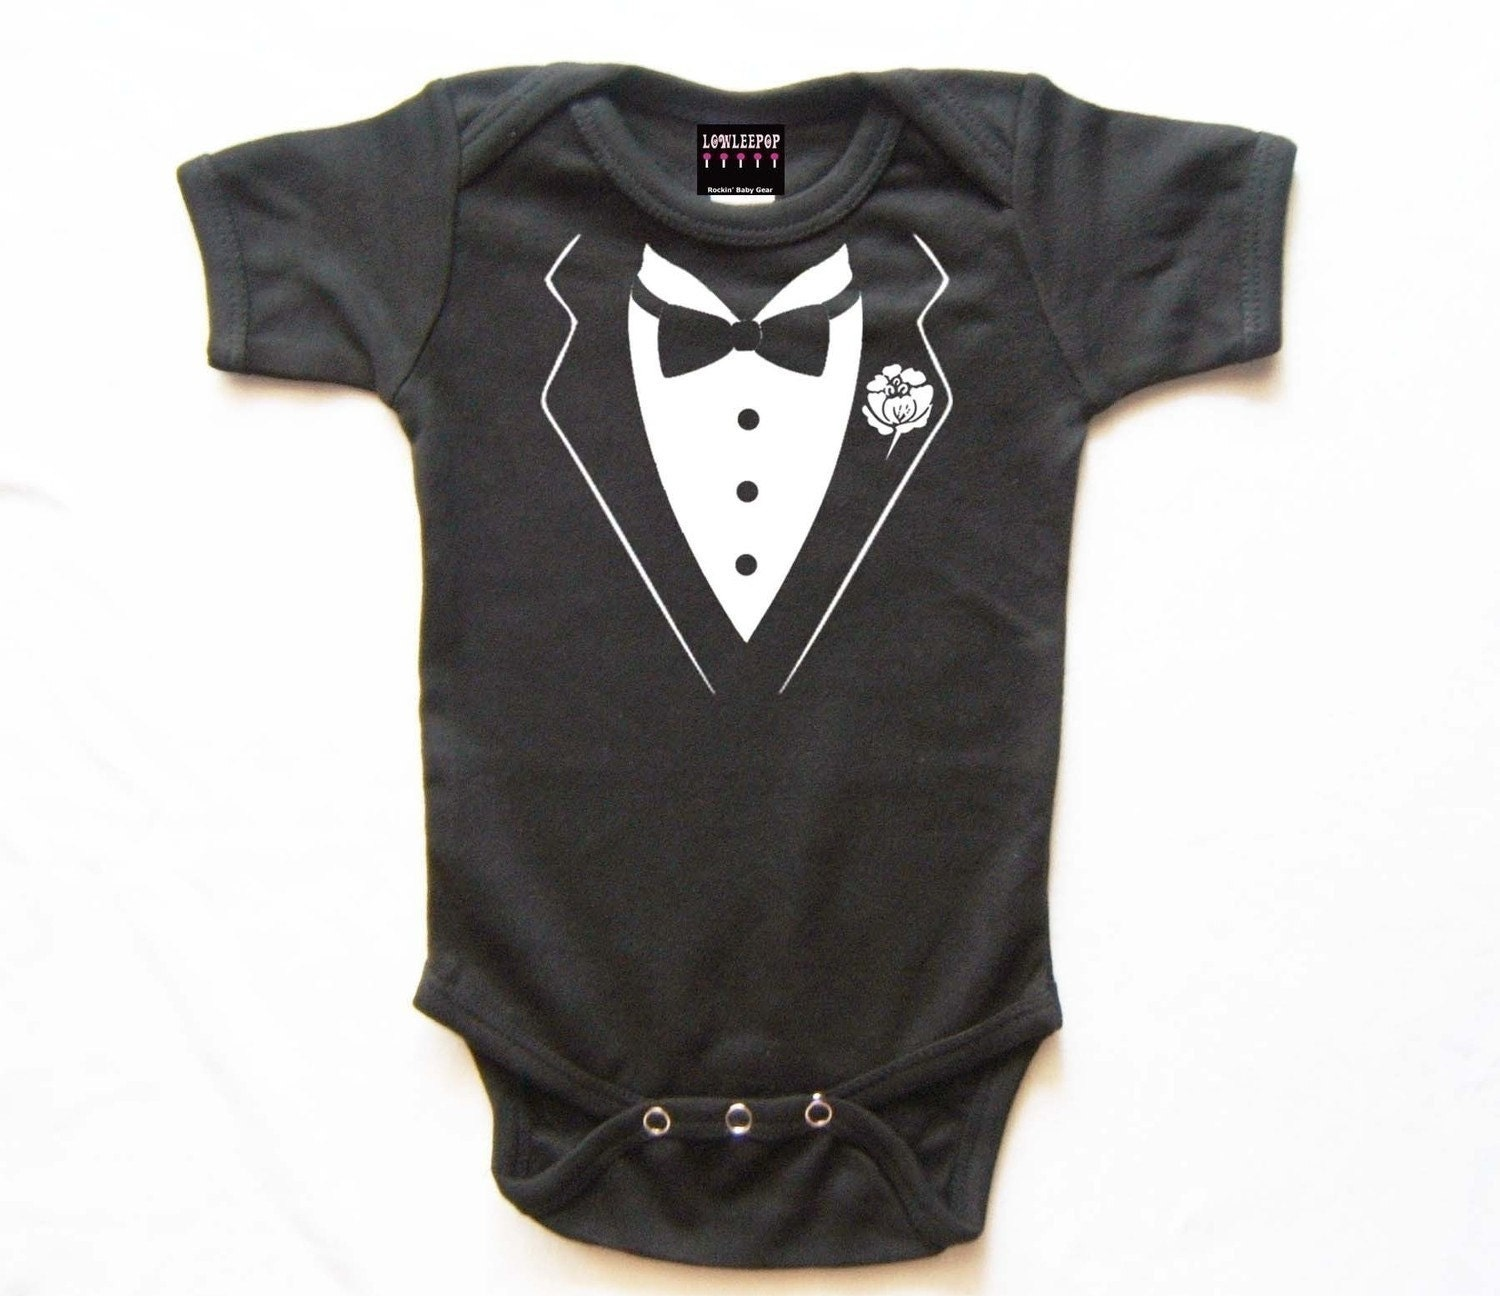 Punk Rock Baby Gift Kit black white Tuxedo Bowtie onesie star hat box